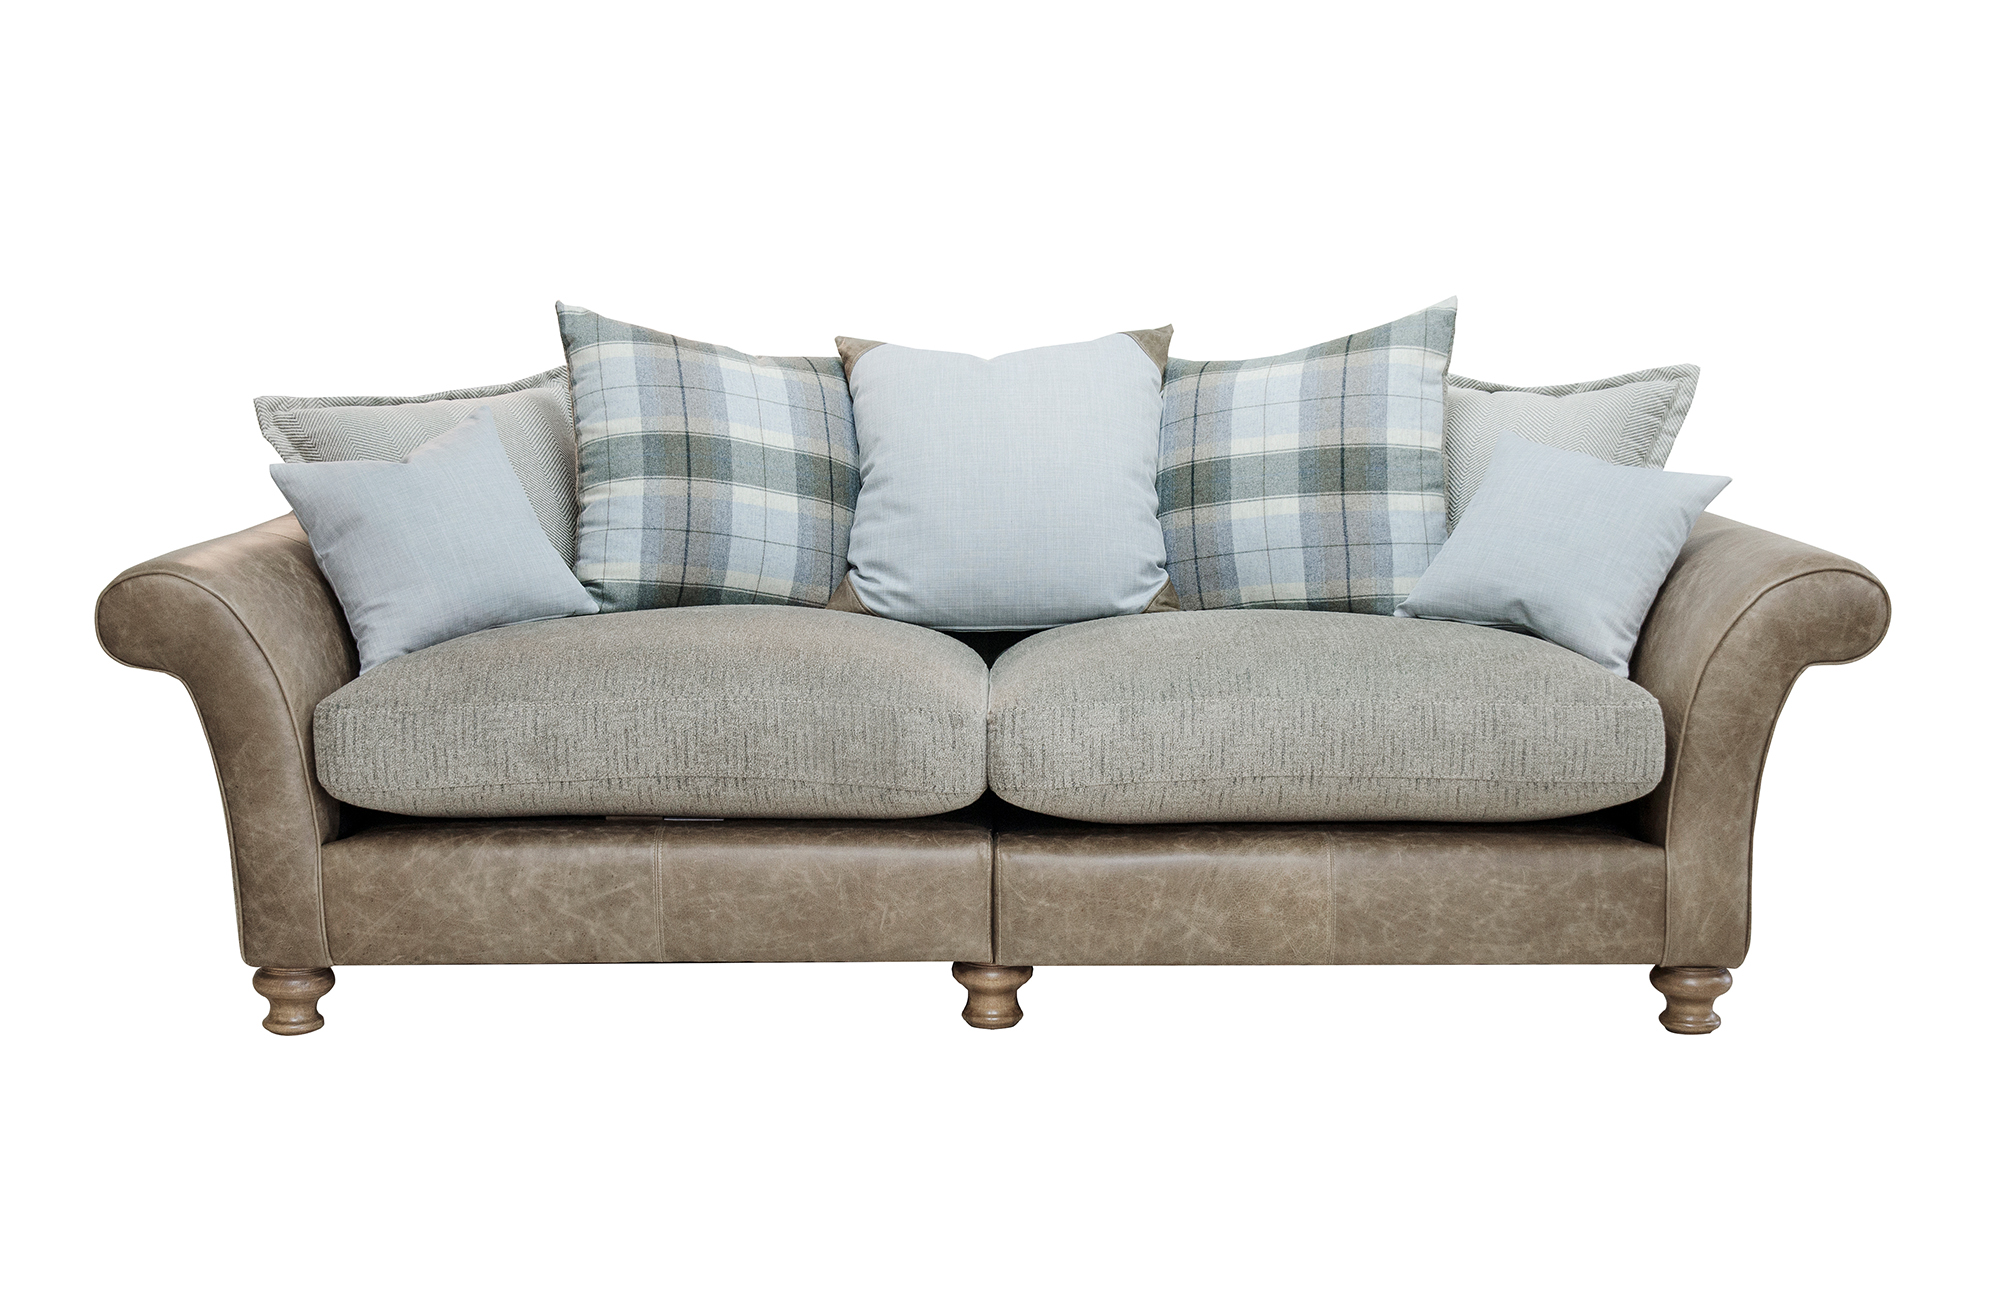 Lawrence 4 Seater Sofa Alexander And James